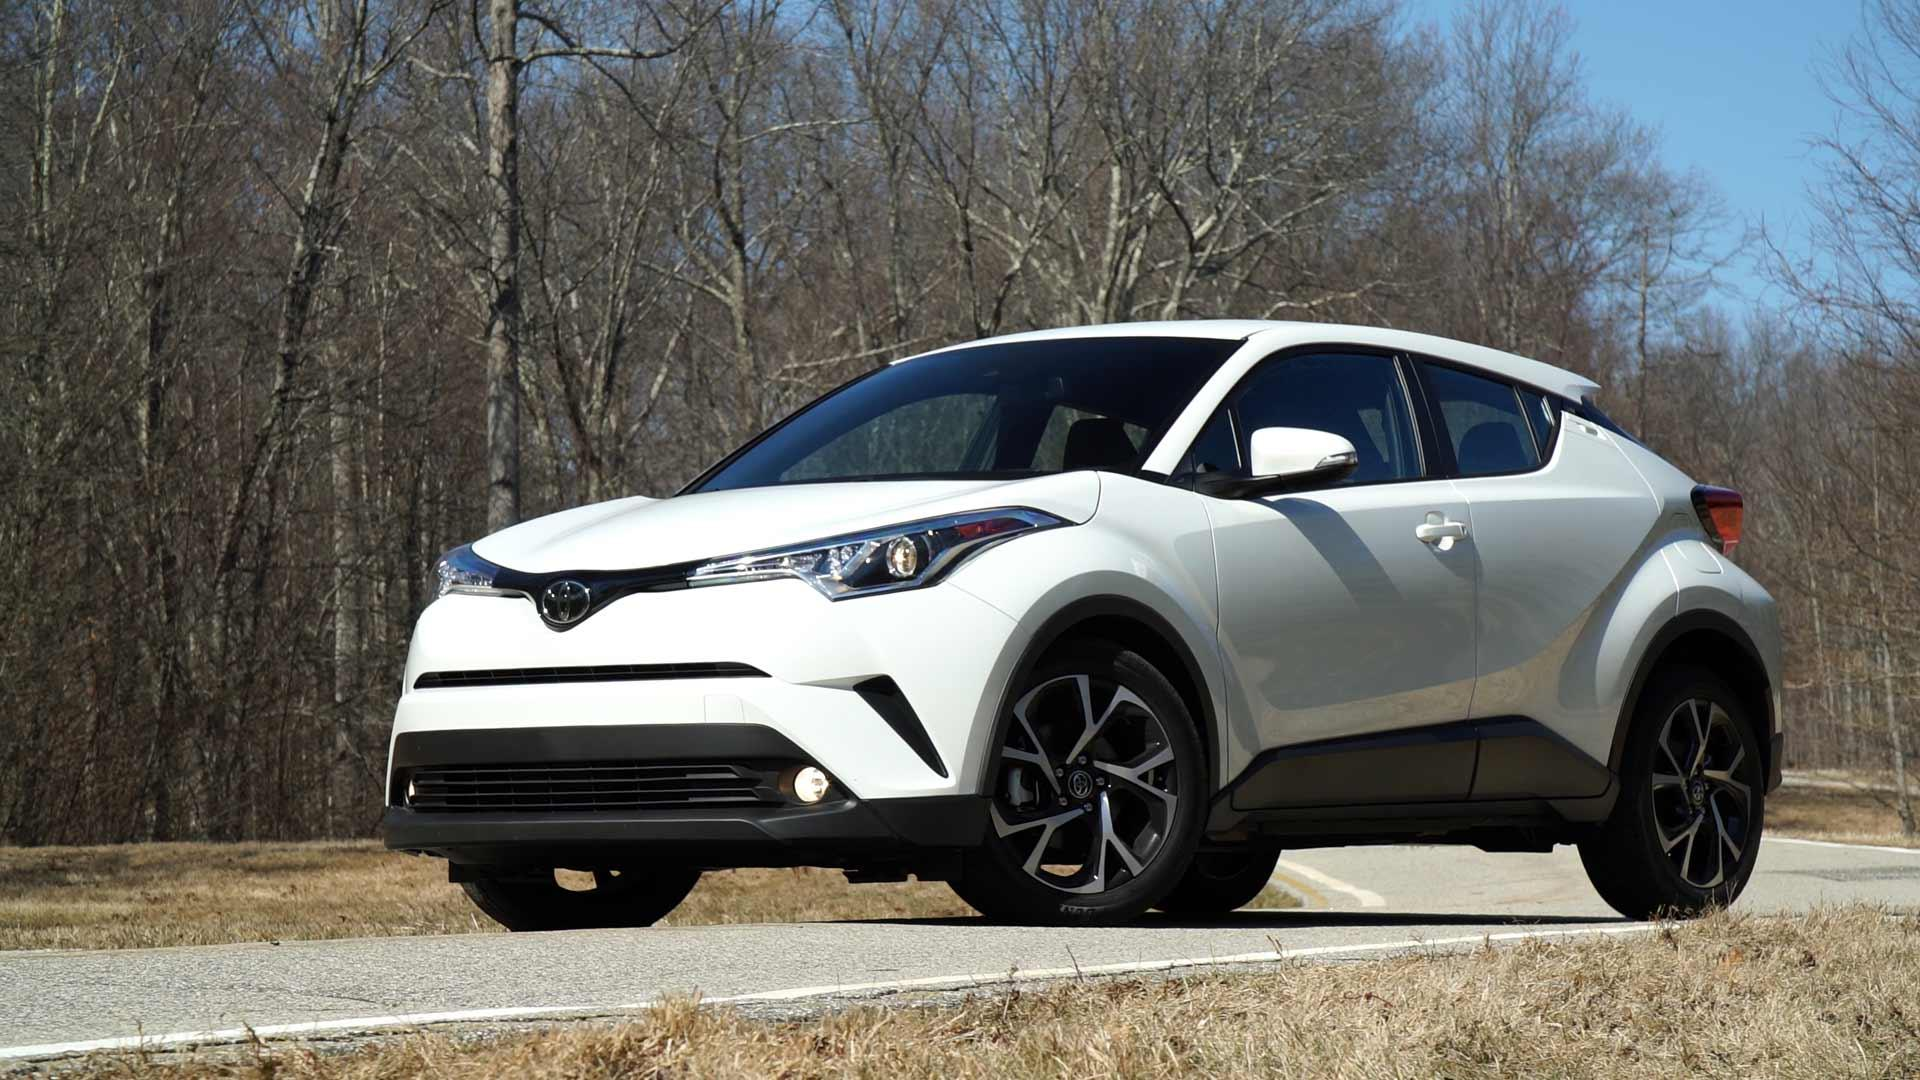 Highlander Vs 4runner >> 2018 Toyota C-HR SUV Targets a Younger Audience - Consumer Reports